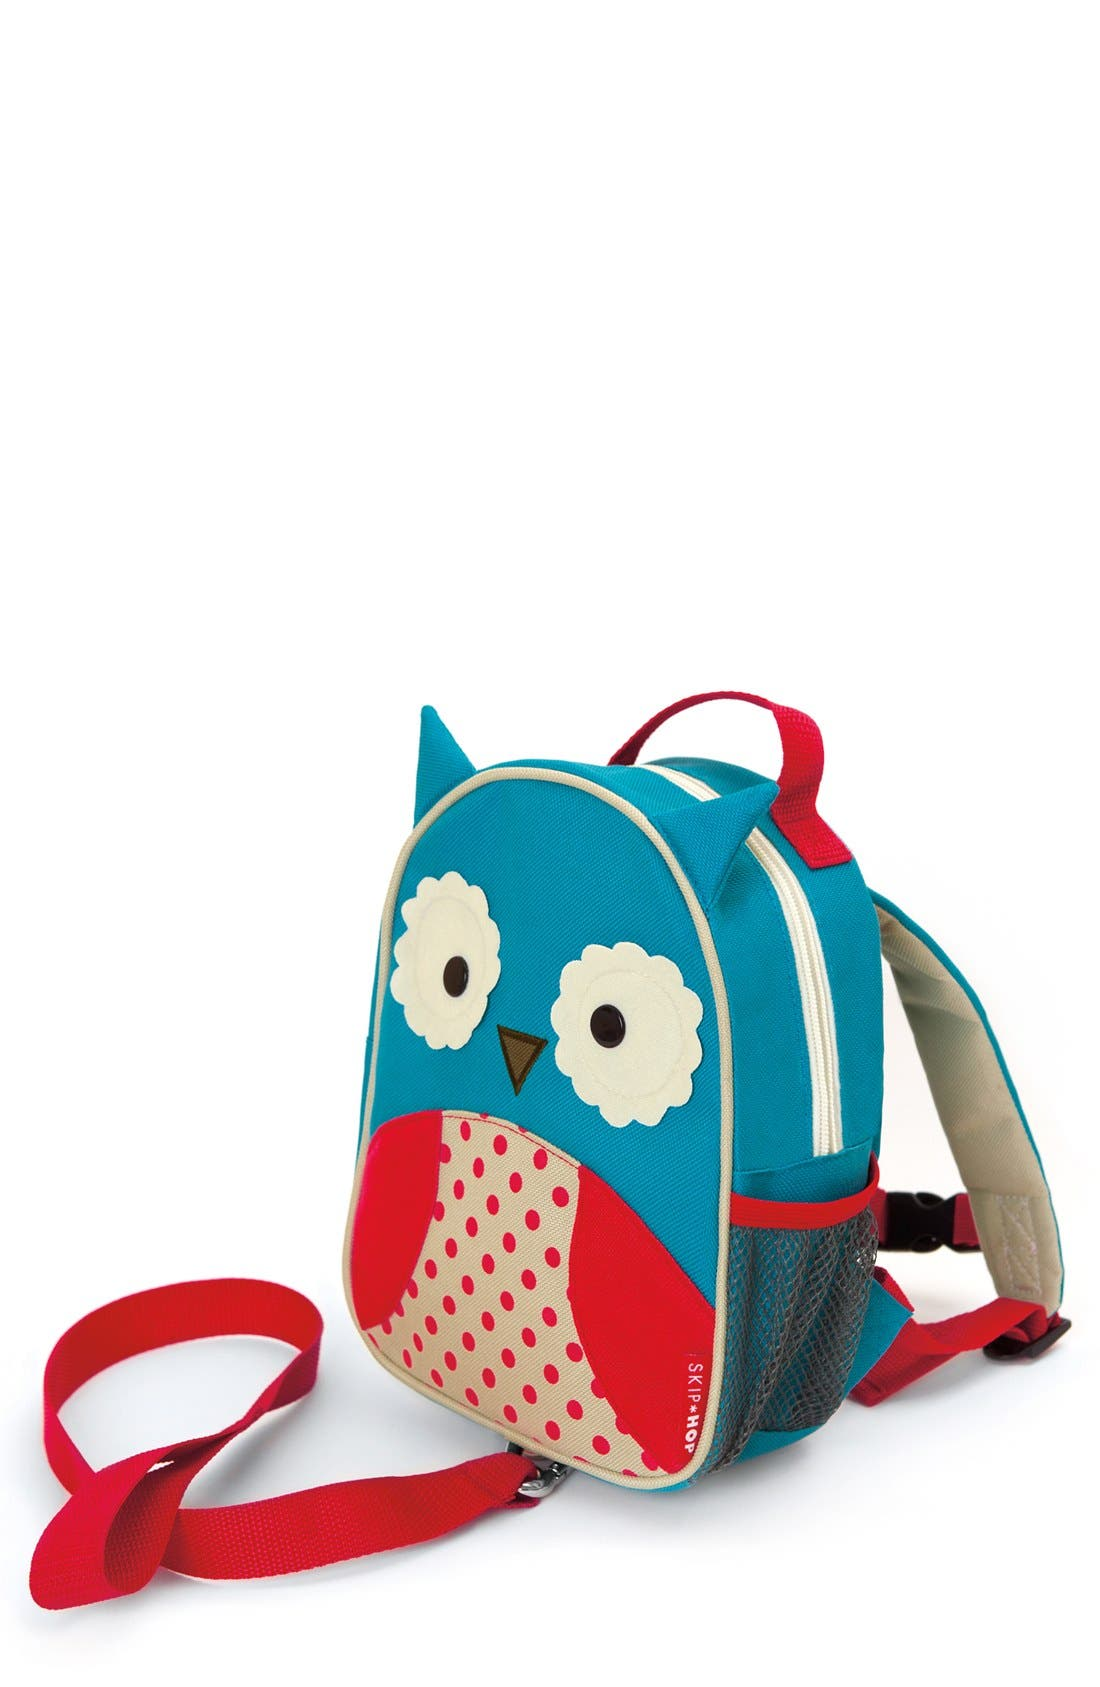 Alternate Image 1 Selected - Skip Hop 'Zoo' Safety Harness Backpack (Kids)